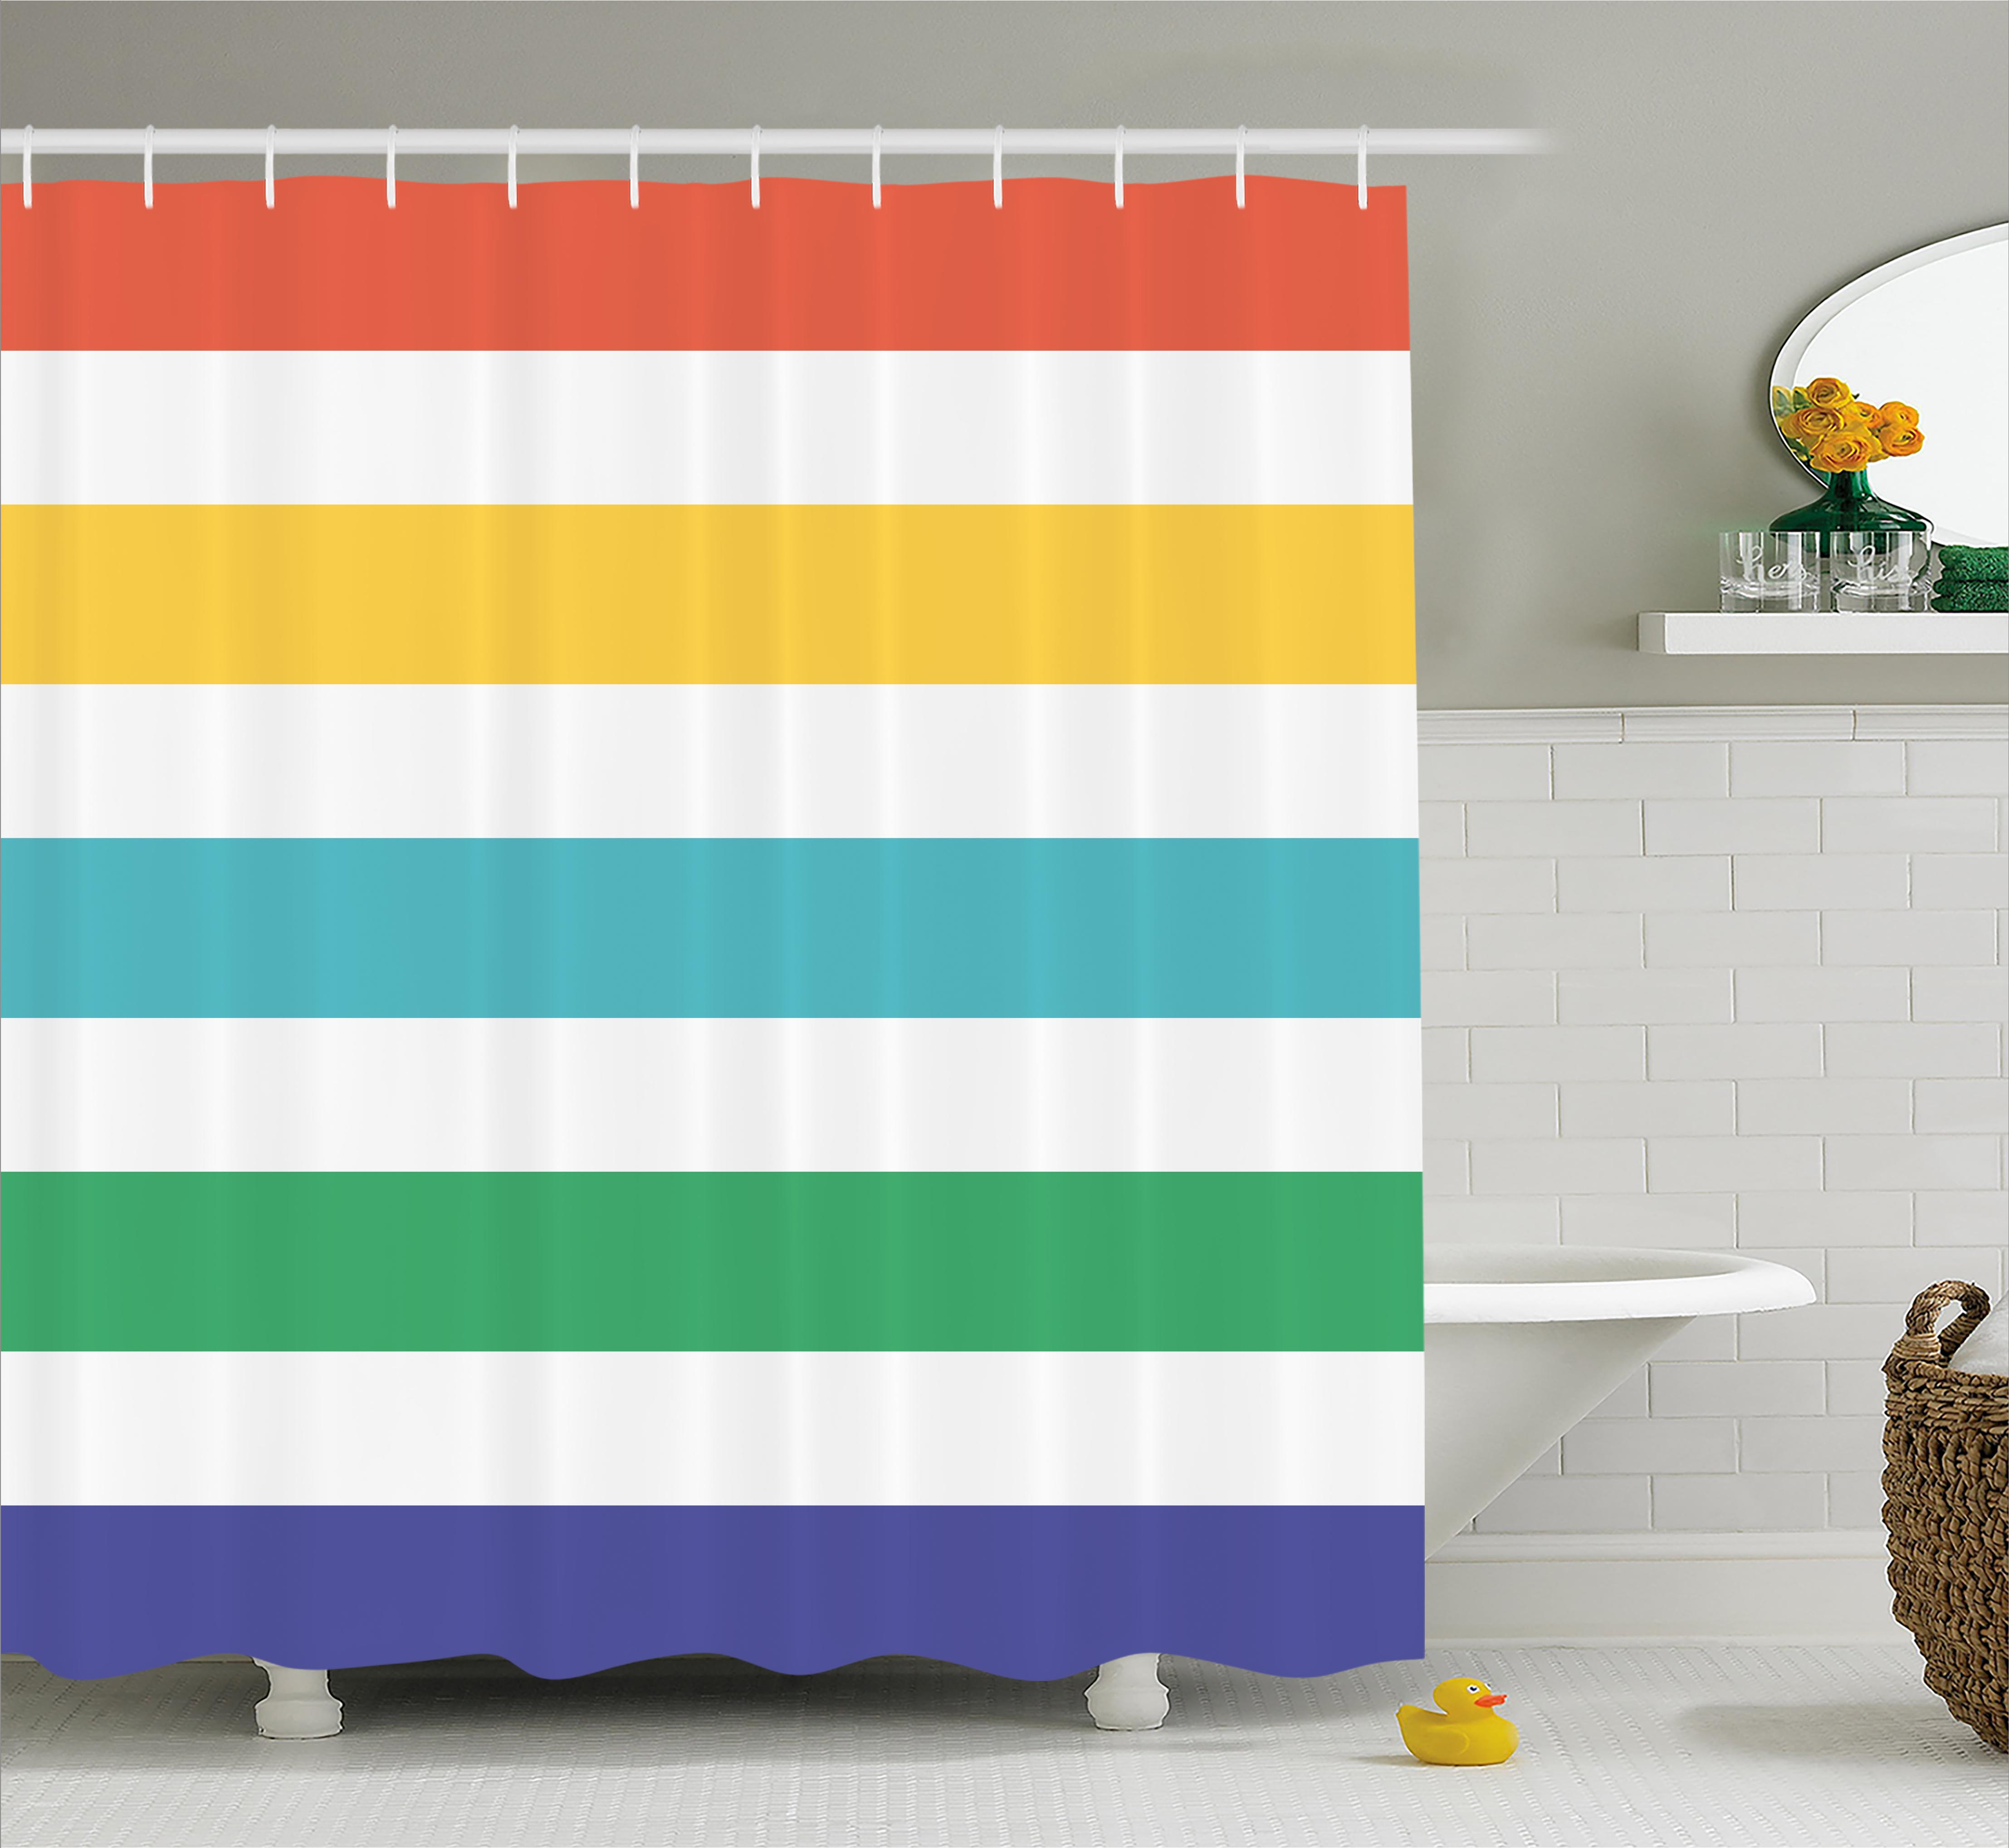 Fabulous Striped Shower Curtain, Rainbow Colored and White Fun Horizontal  YI39